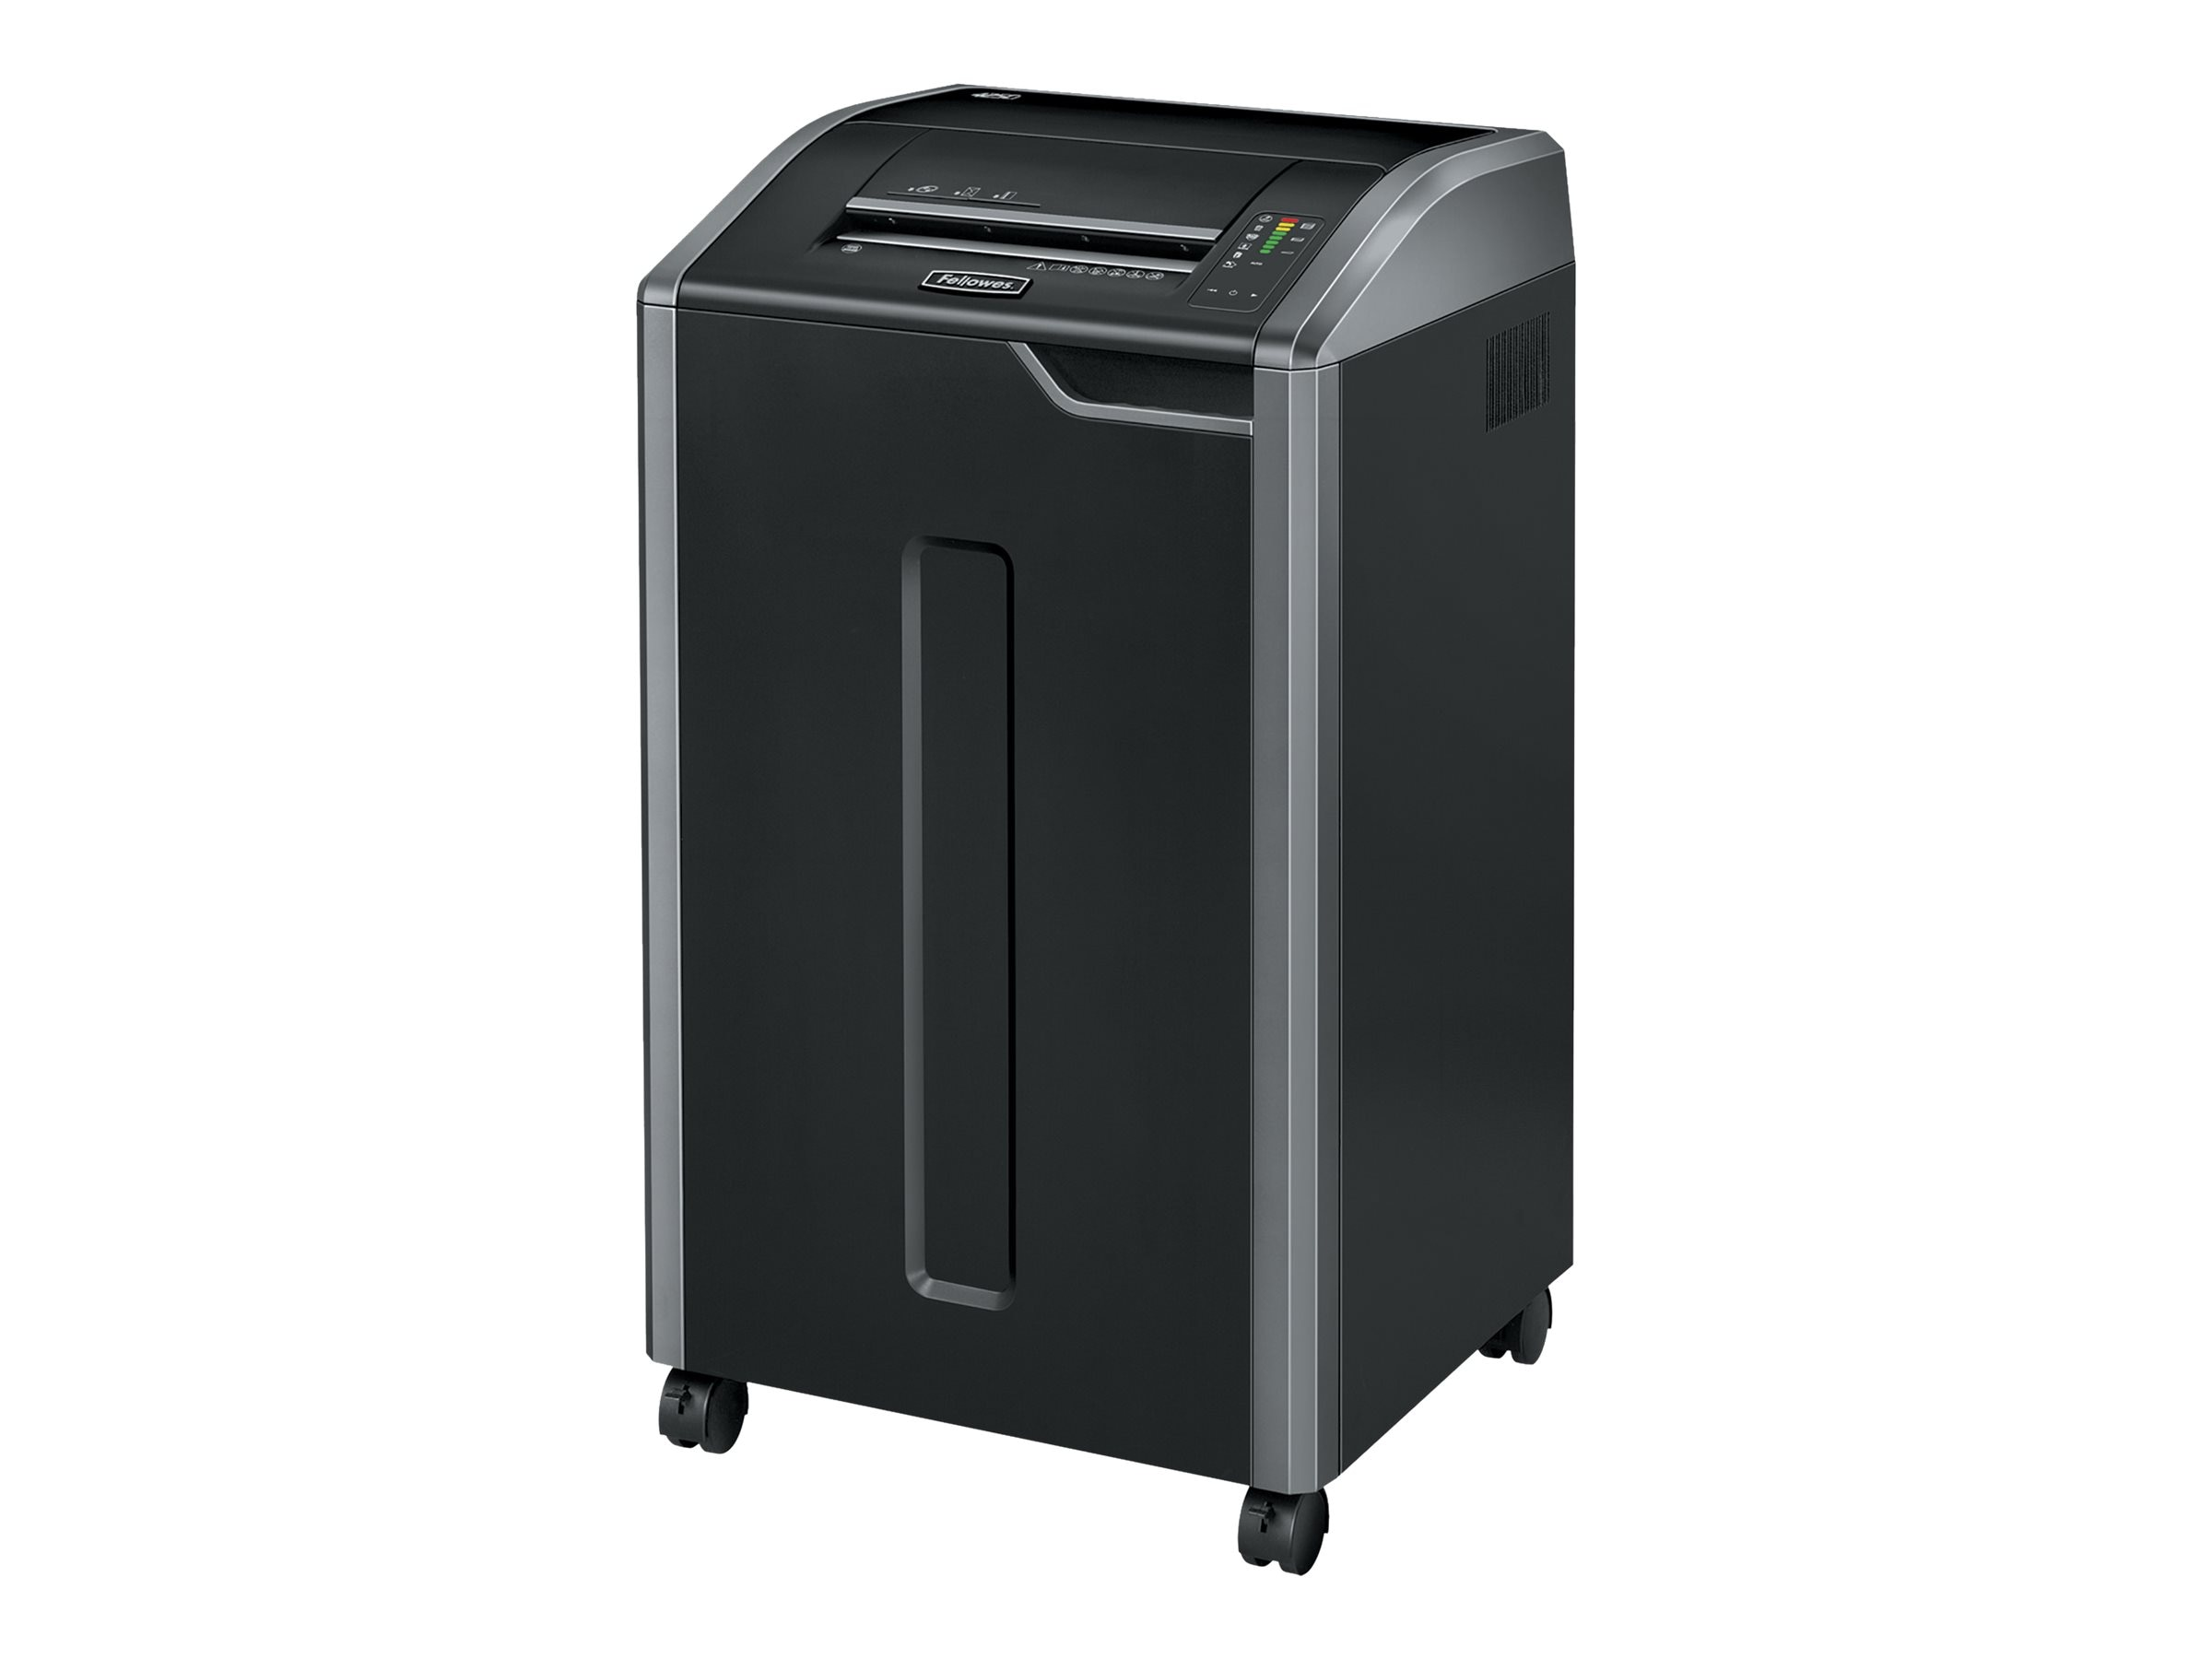 Fellowes Powershred 425Ci Jam Proof Cross-Cut Shredder